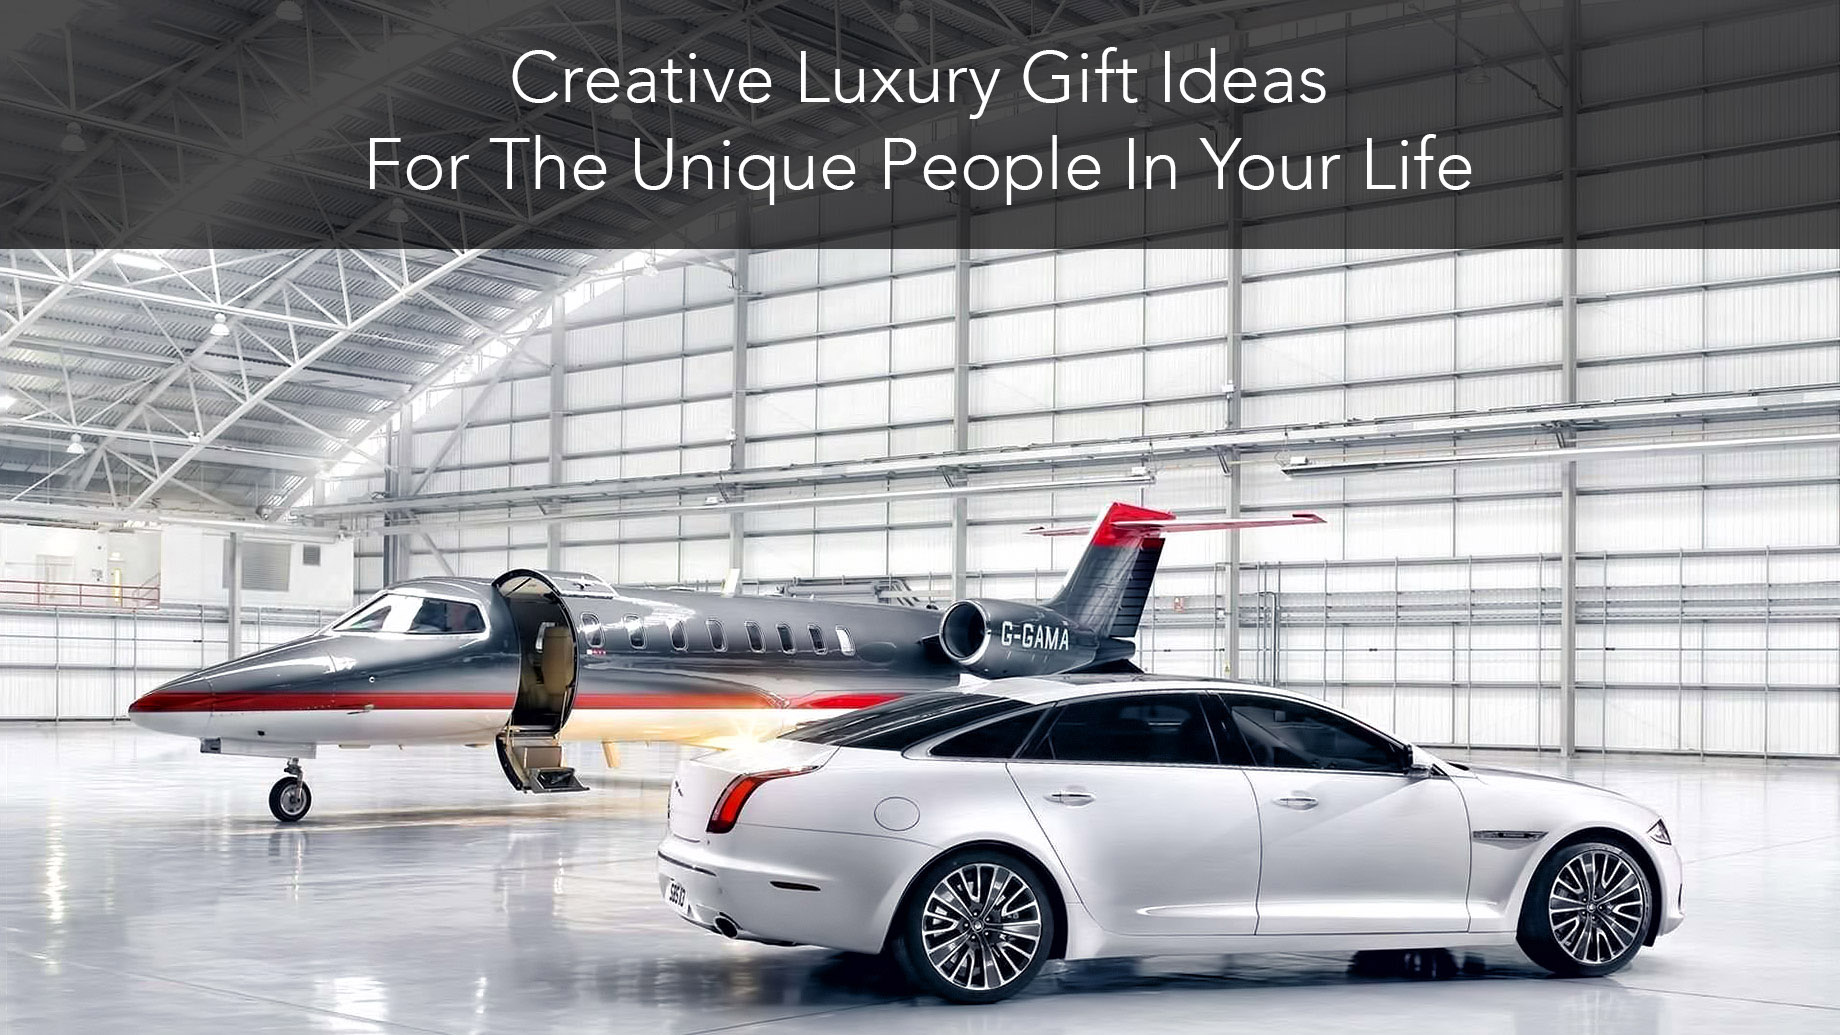 Creative Luxury Gift Ideas For The Unique People In Your Life